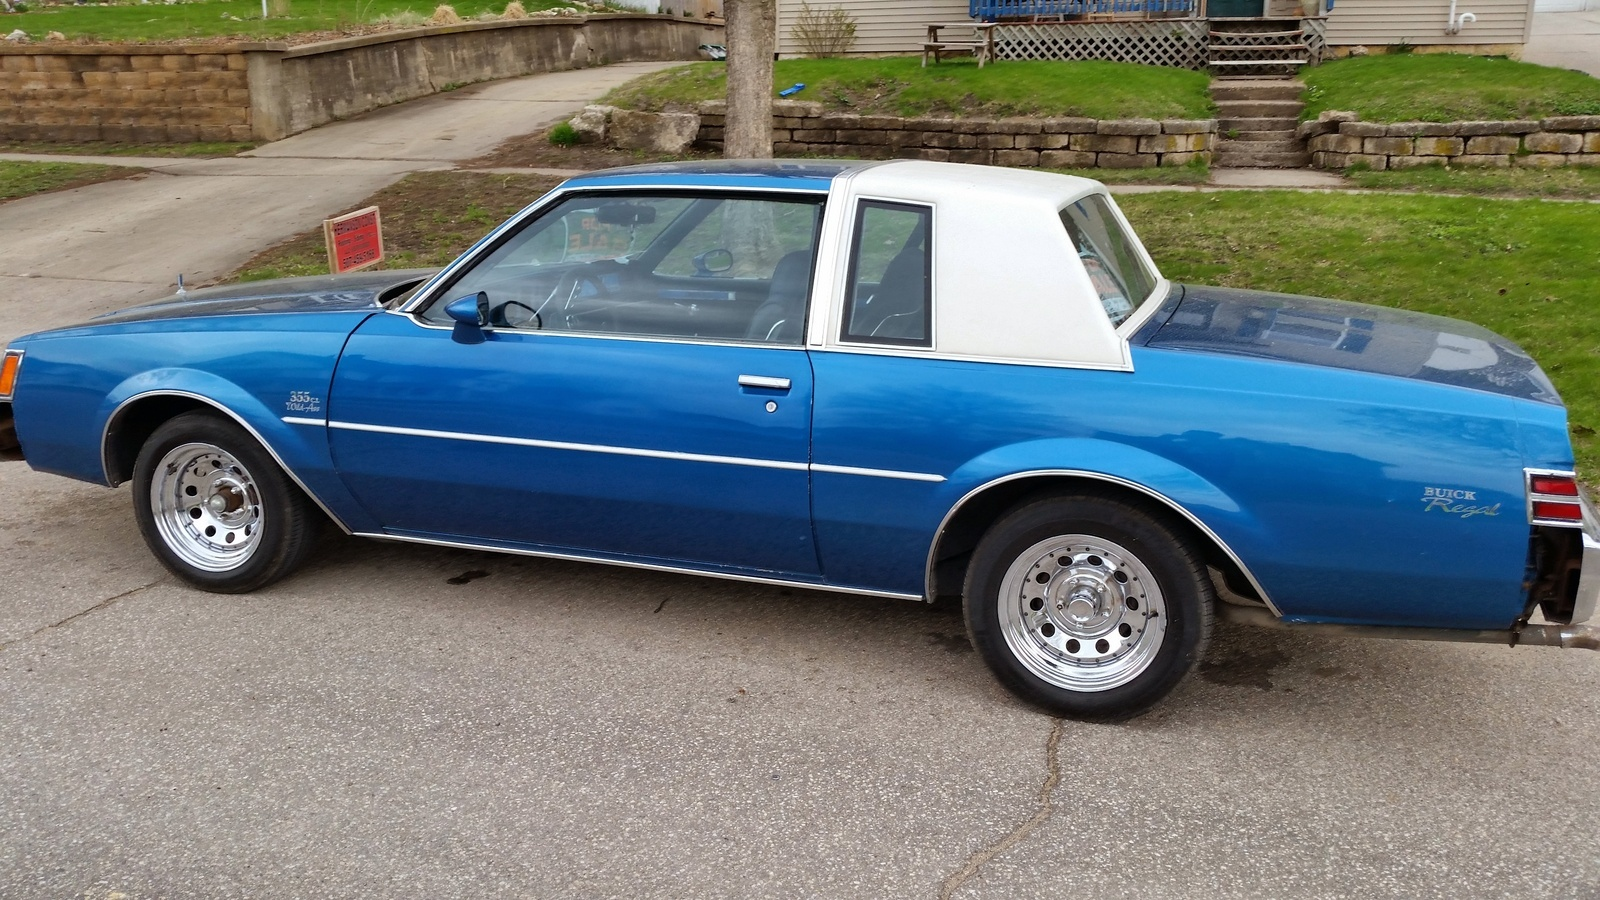 Buick Regal Door Coupe Pic X on 1986 Buick Lesabre Wagon